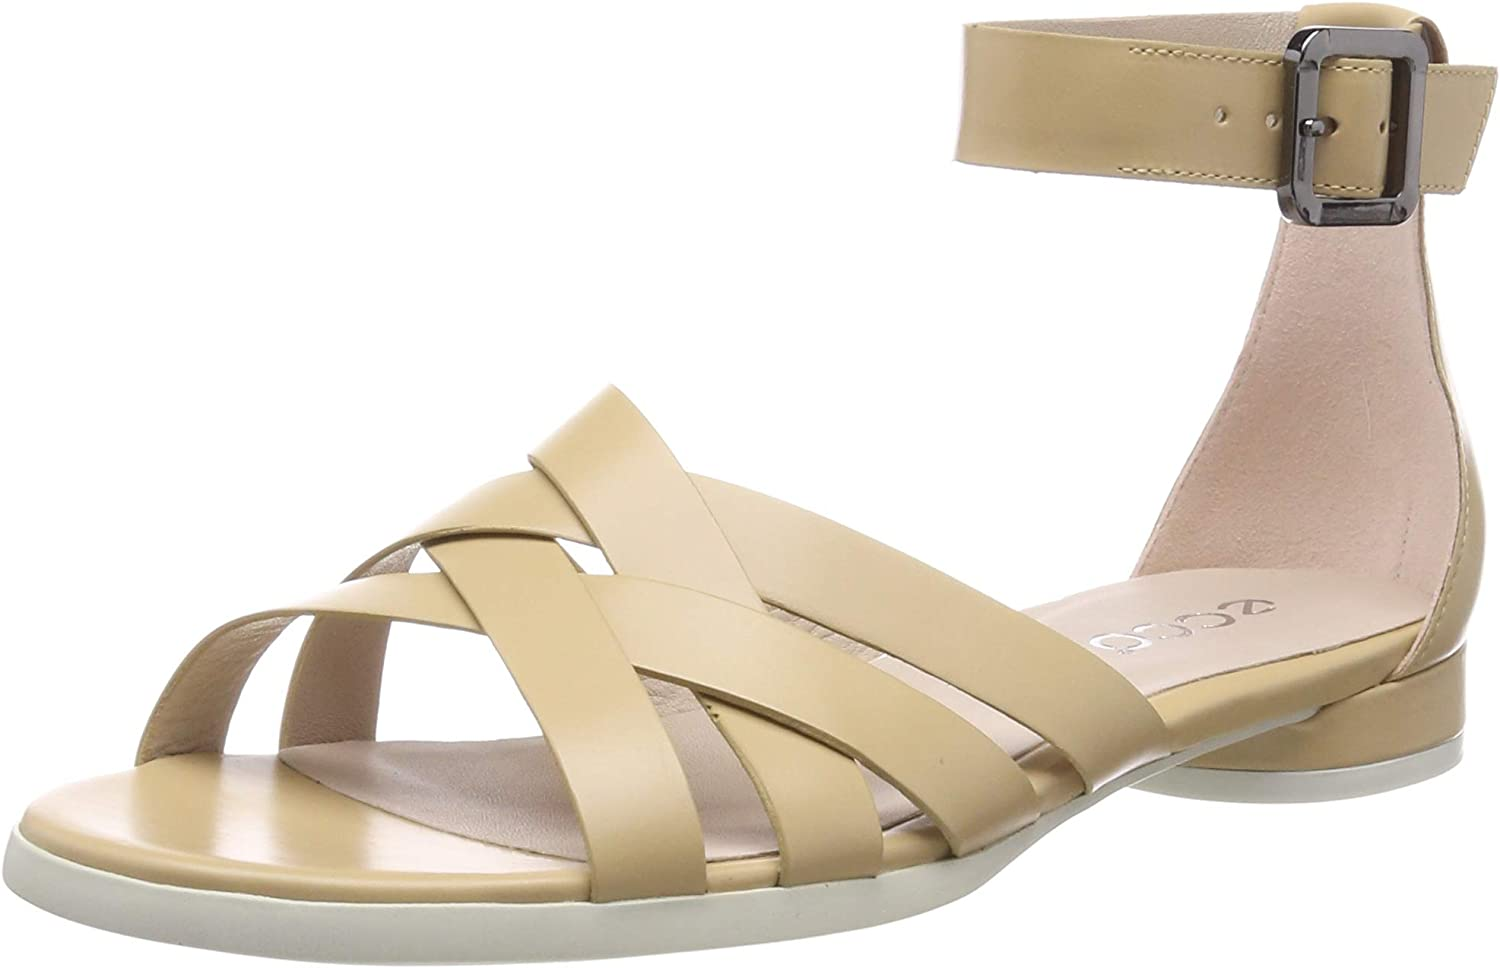 ECCO Women's Ankle Strap Sandals Super intense SALE Free Shipping New